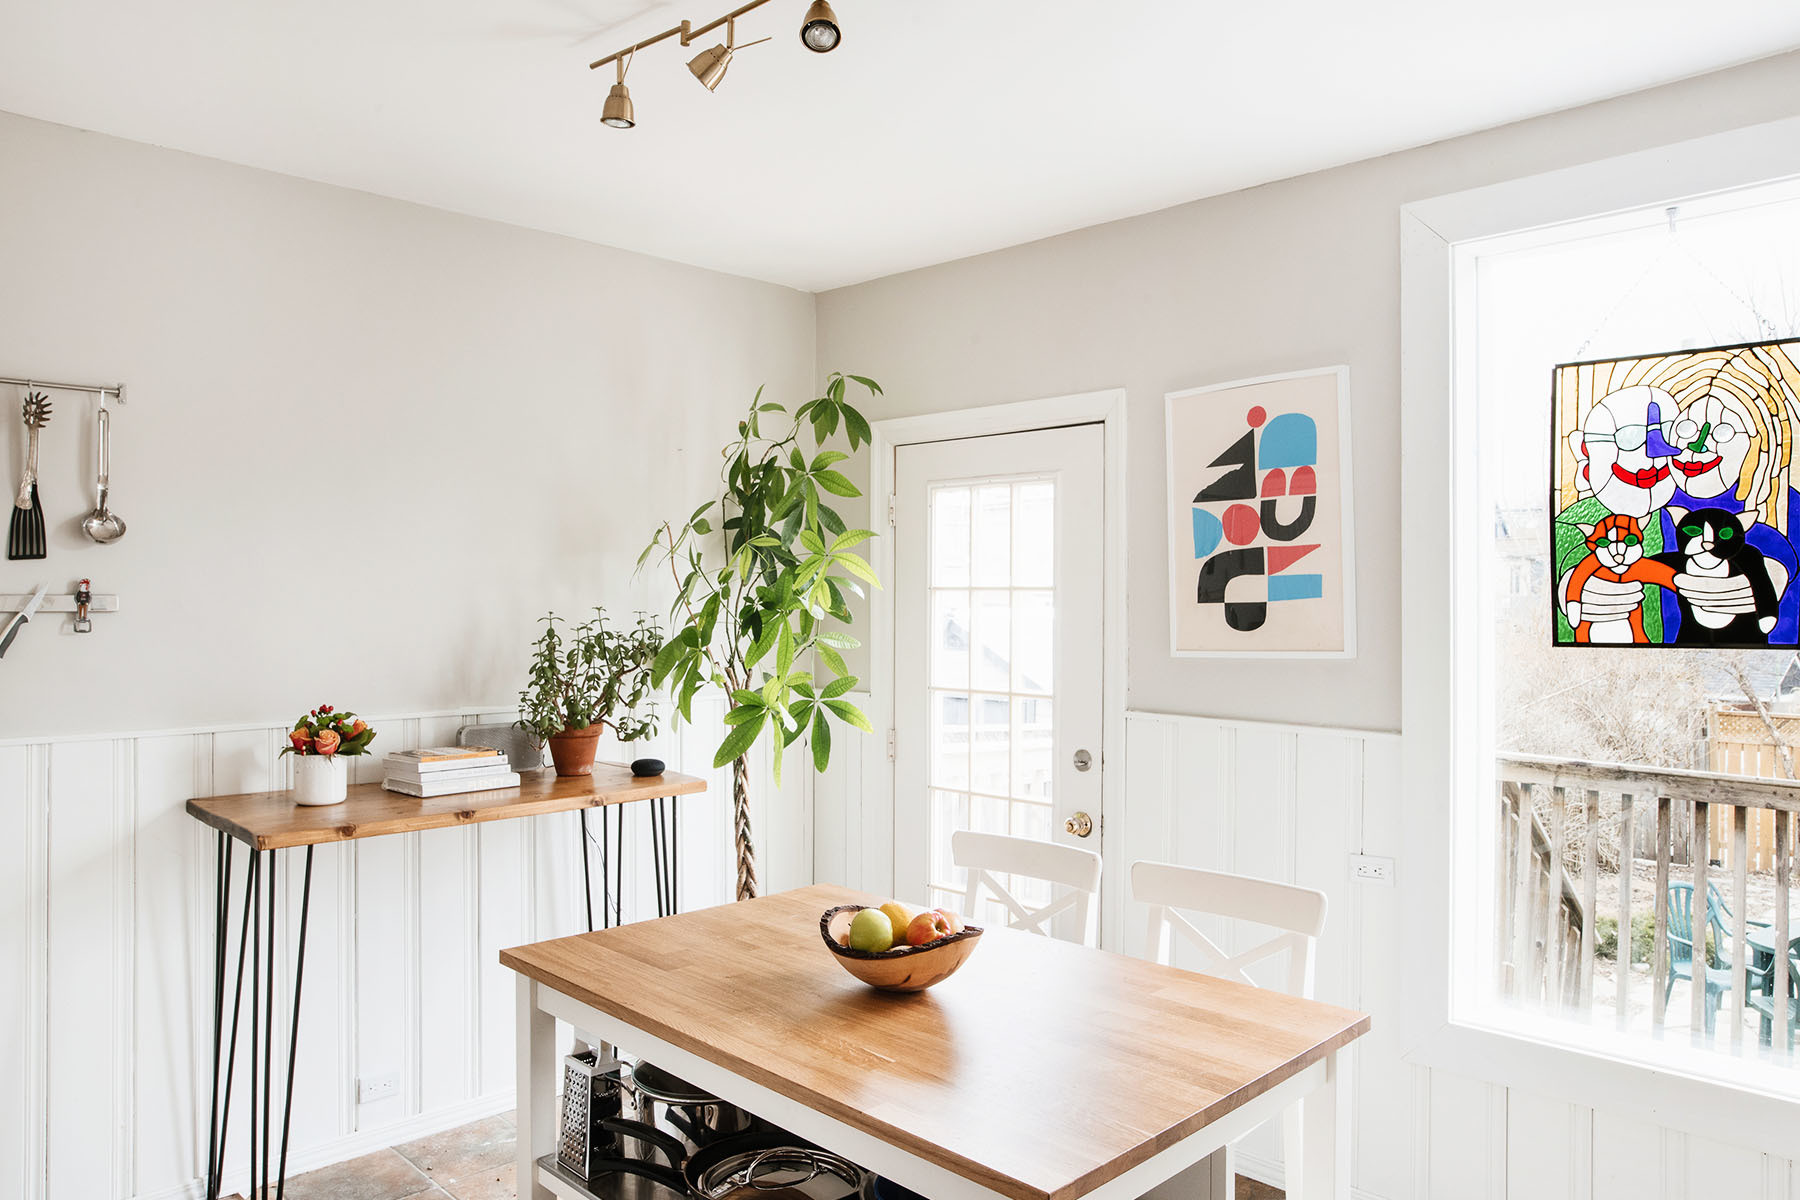 The couple's open kitchen boasts a restorative, contemporary farmhouse look and feel. IKEA Kitchen Island | IKEA Bar Stools | Structube Light Fixture | Custom Console Table | Cody Hudson Artwork | Max Parr Custom Stained Glass.